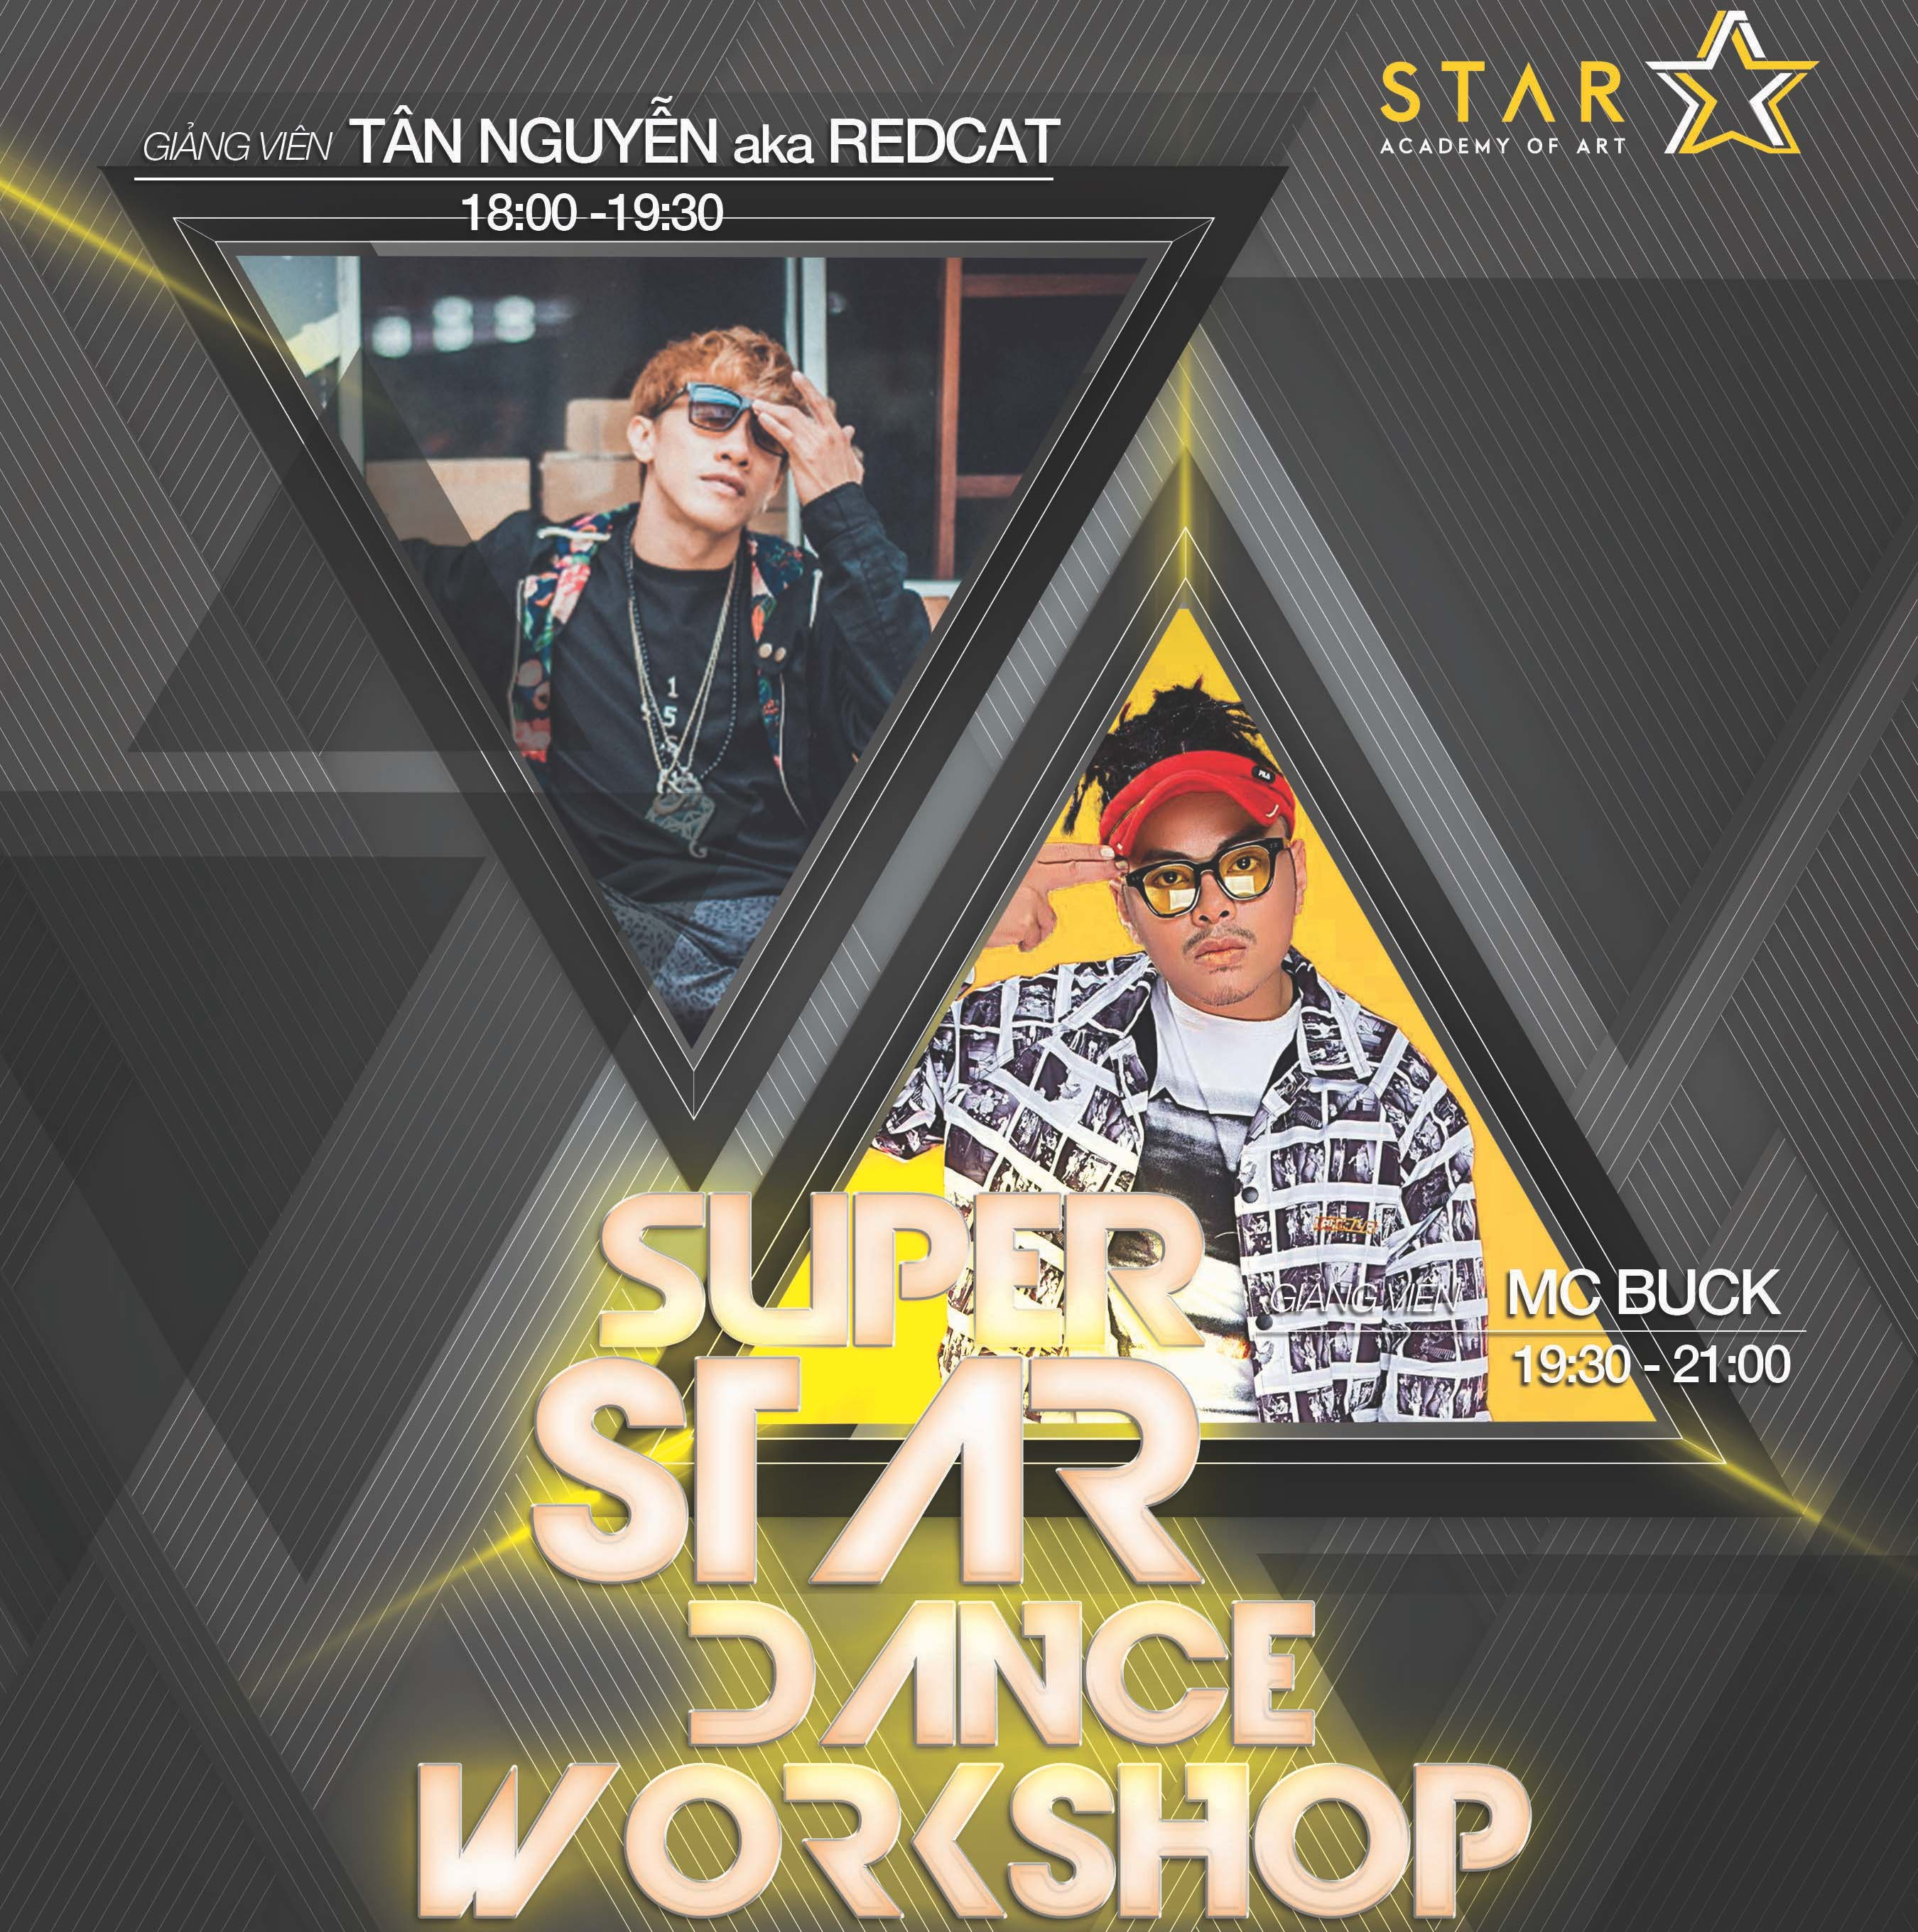 SUPER STAR DANCE WORKSHOP - 05/05/2018